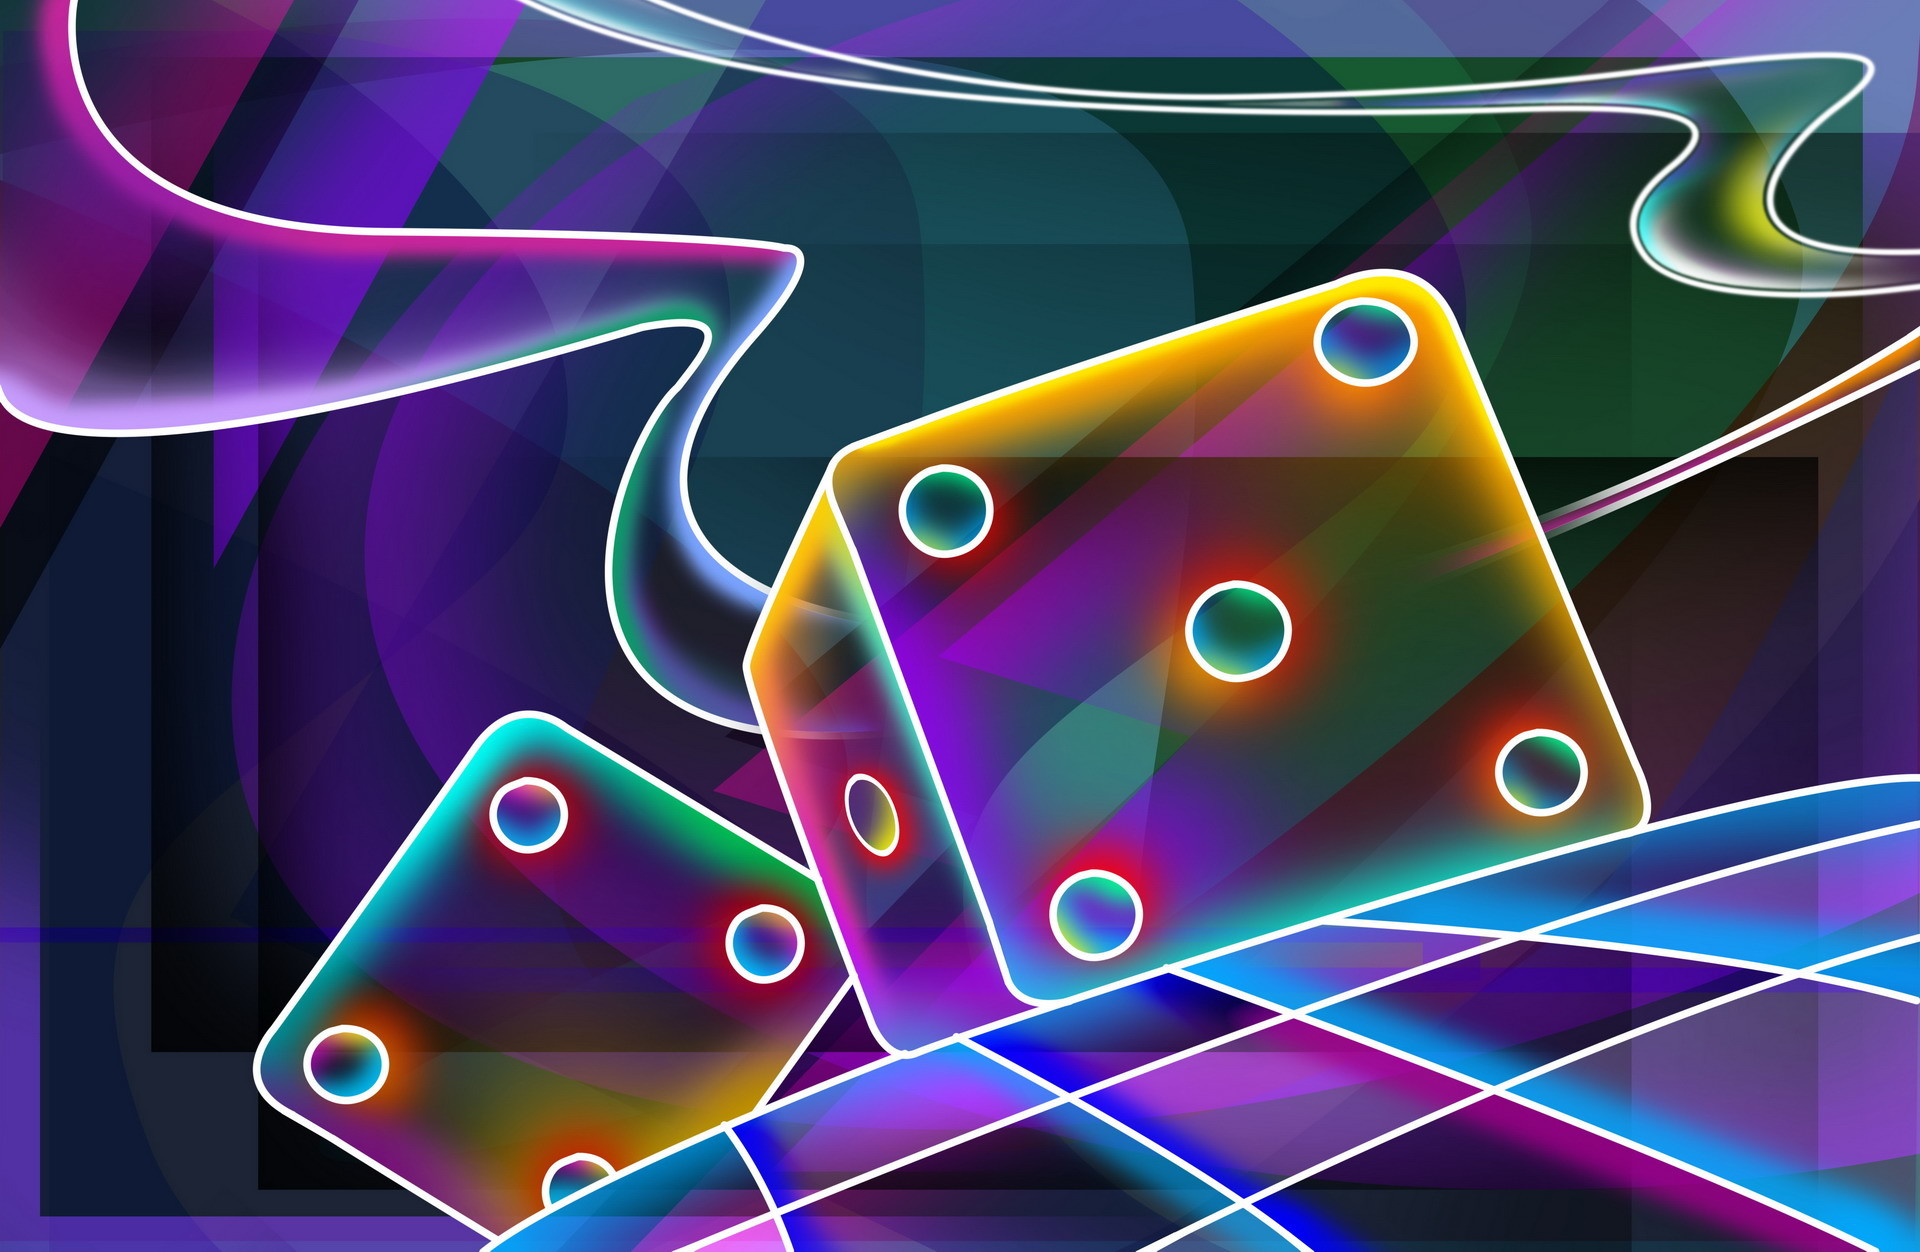 Cool Neon Wallpaper (54+ images)